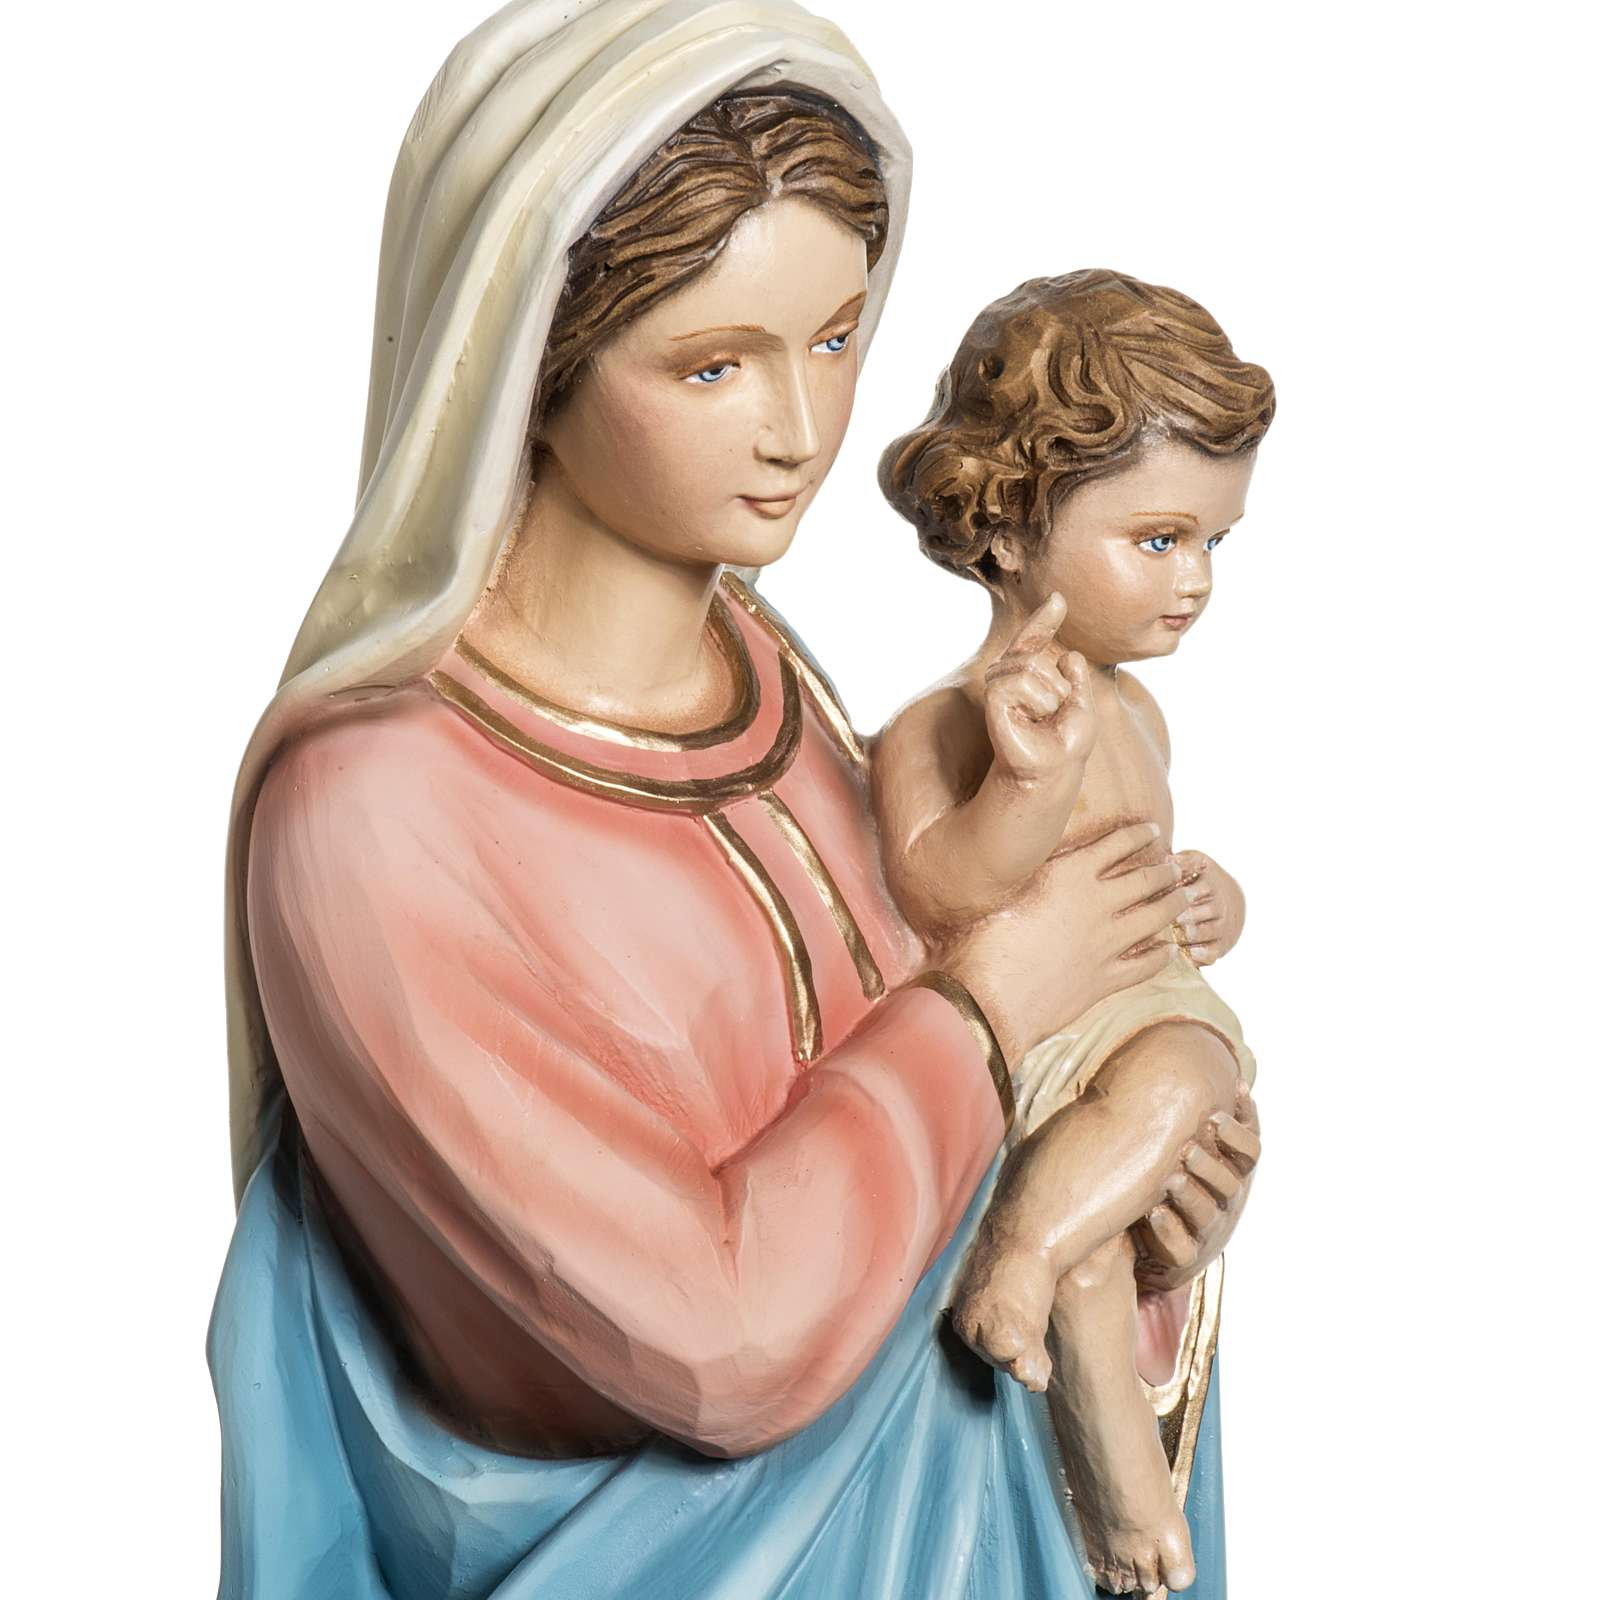 Virgin Mary and baby Jesus fiberglass statue 60 cm 4